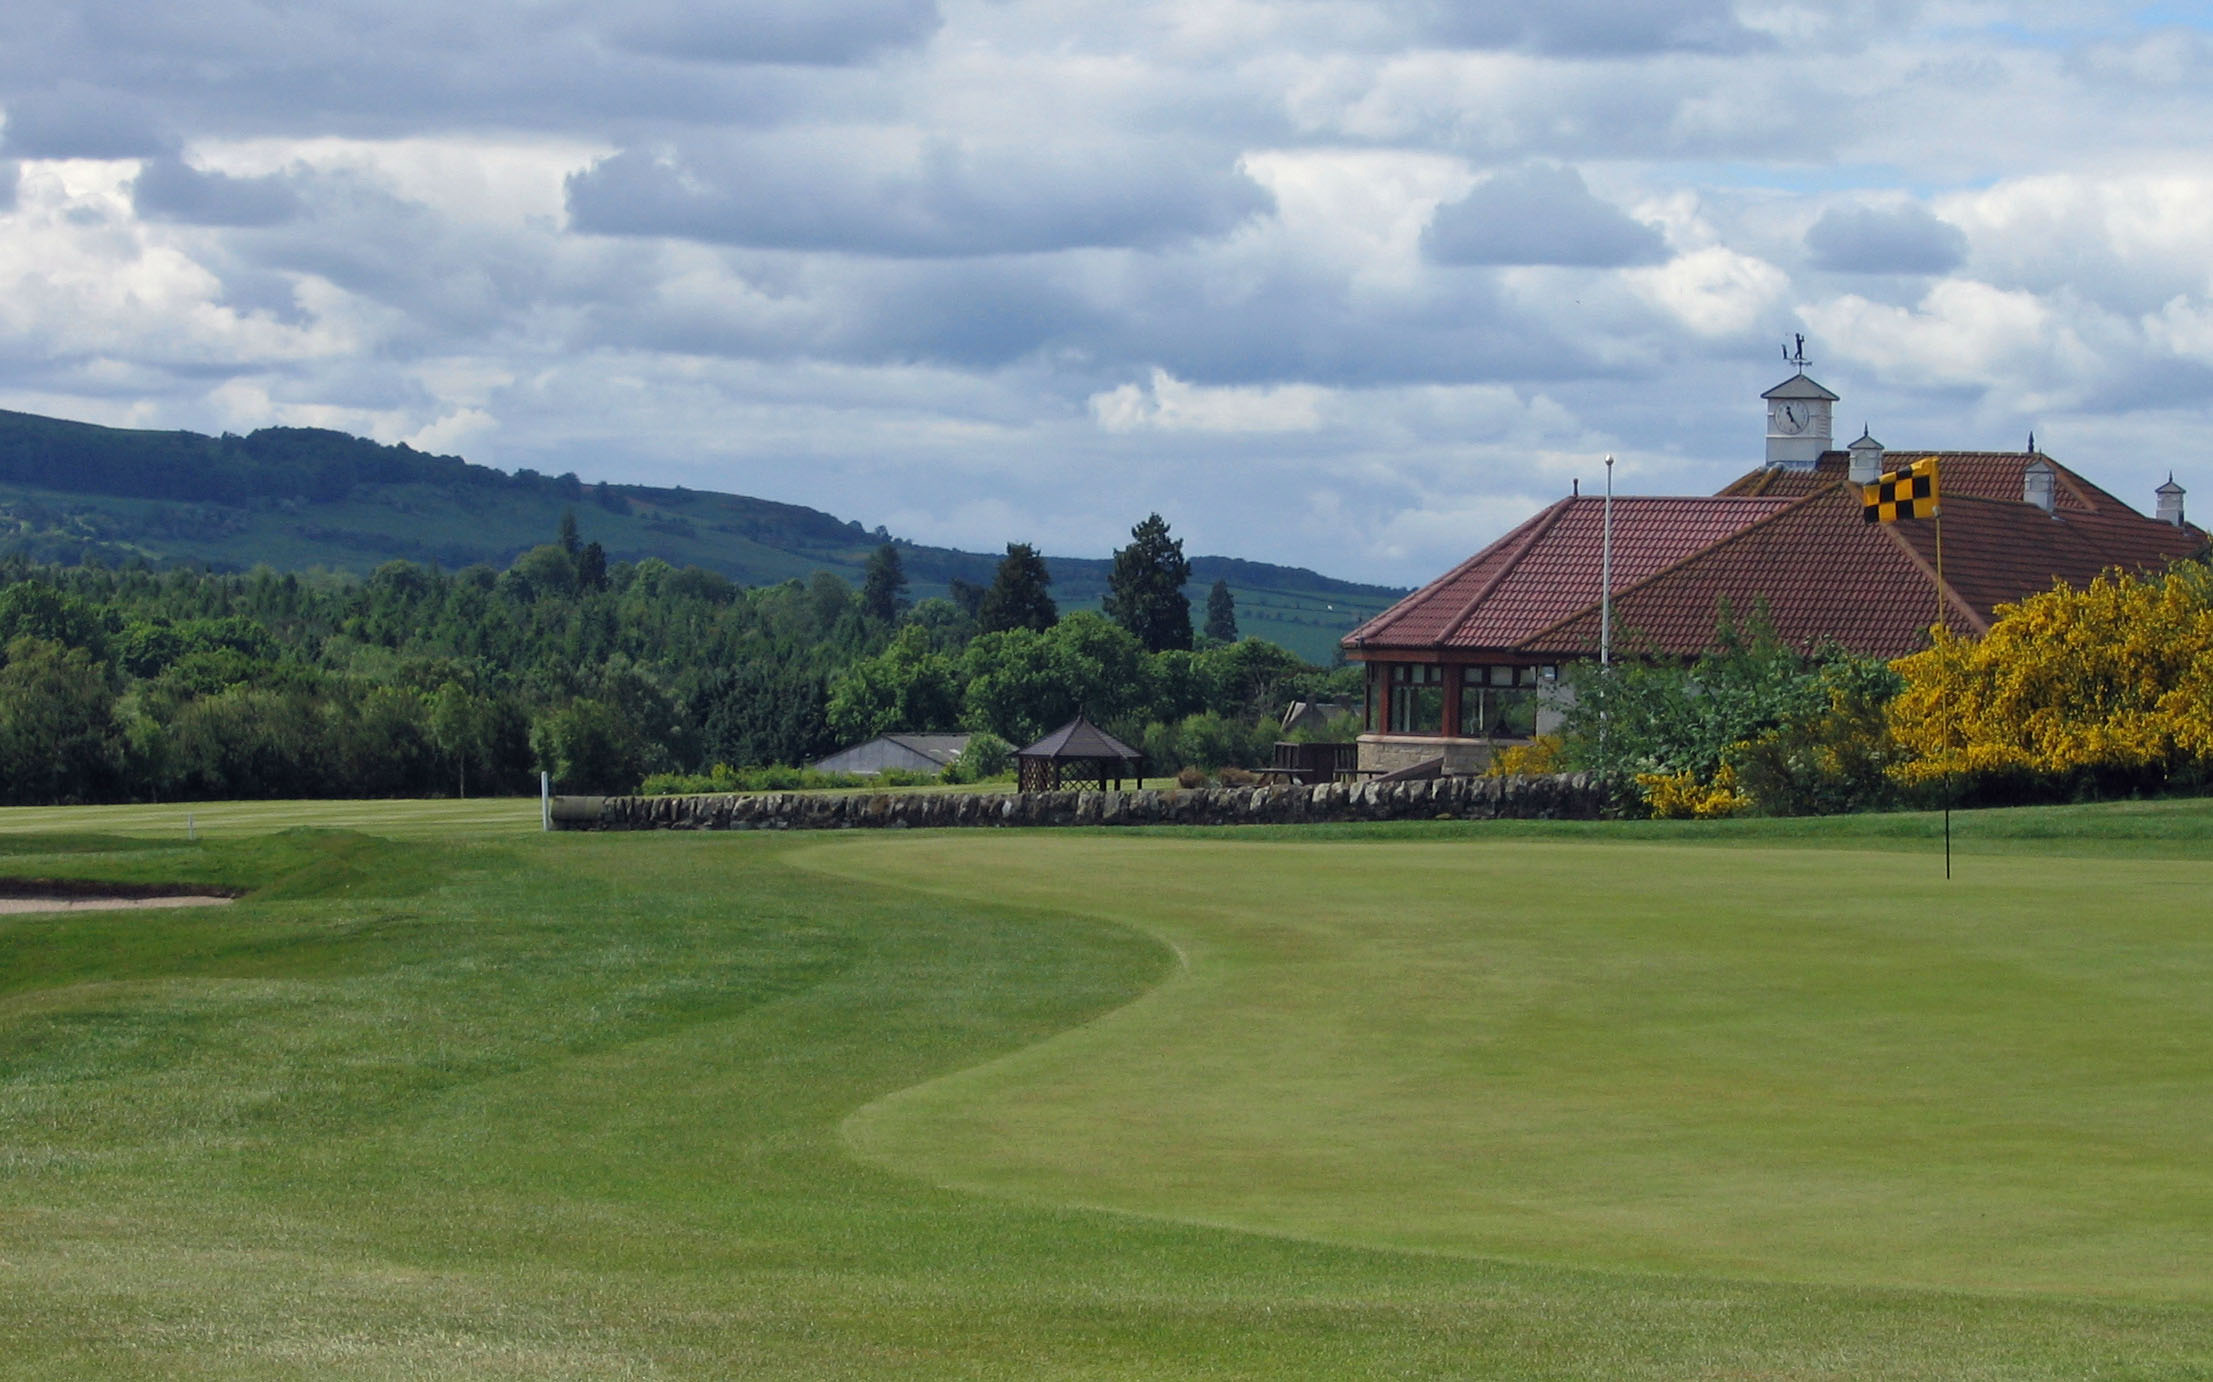 Overview of golf course named Elmwood Golf